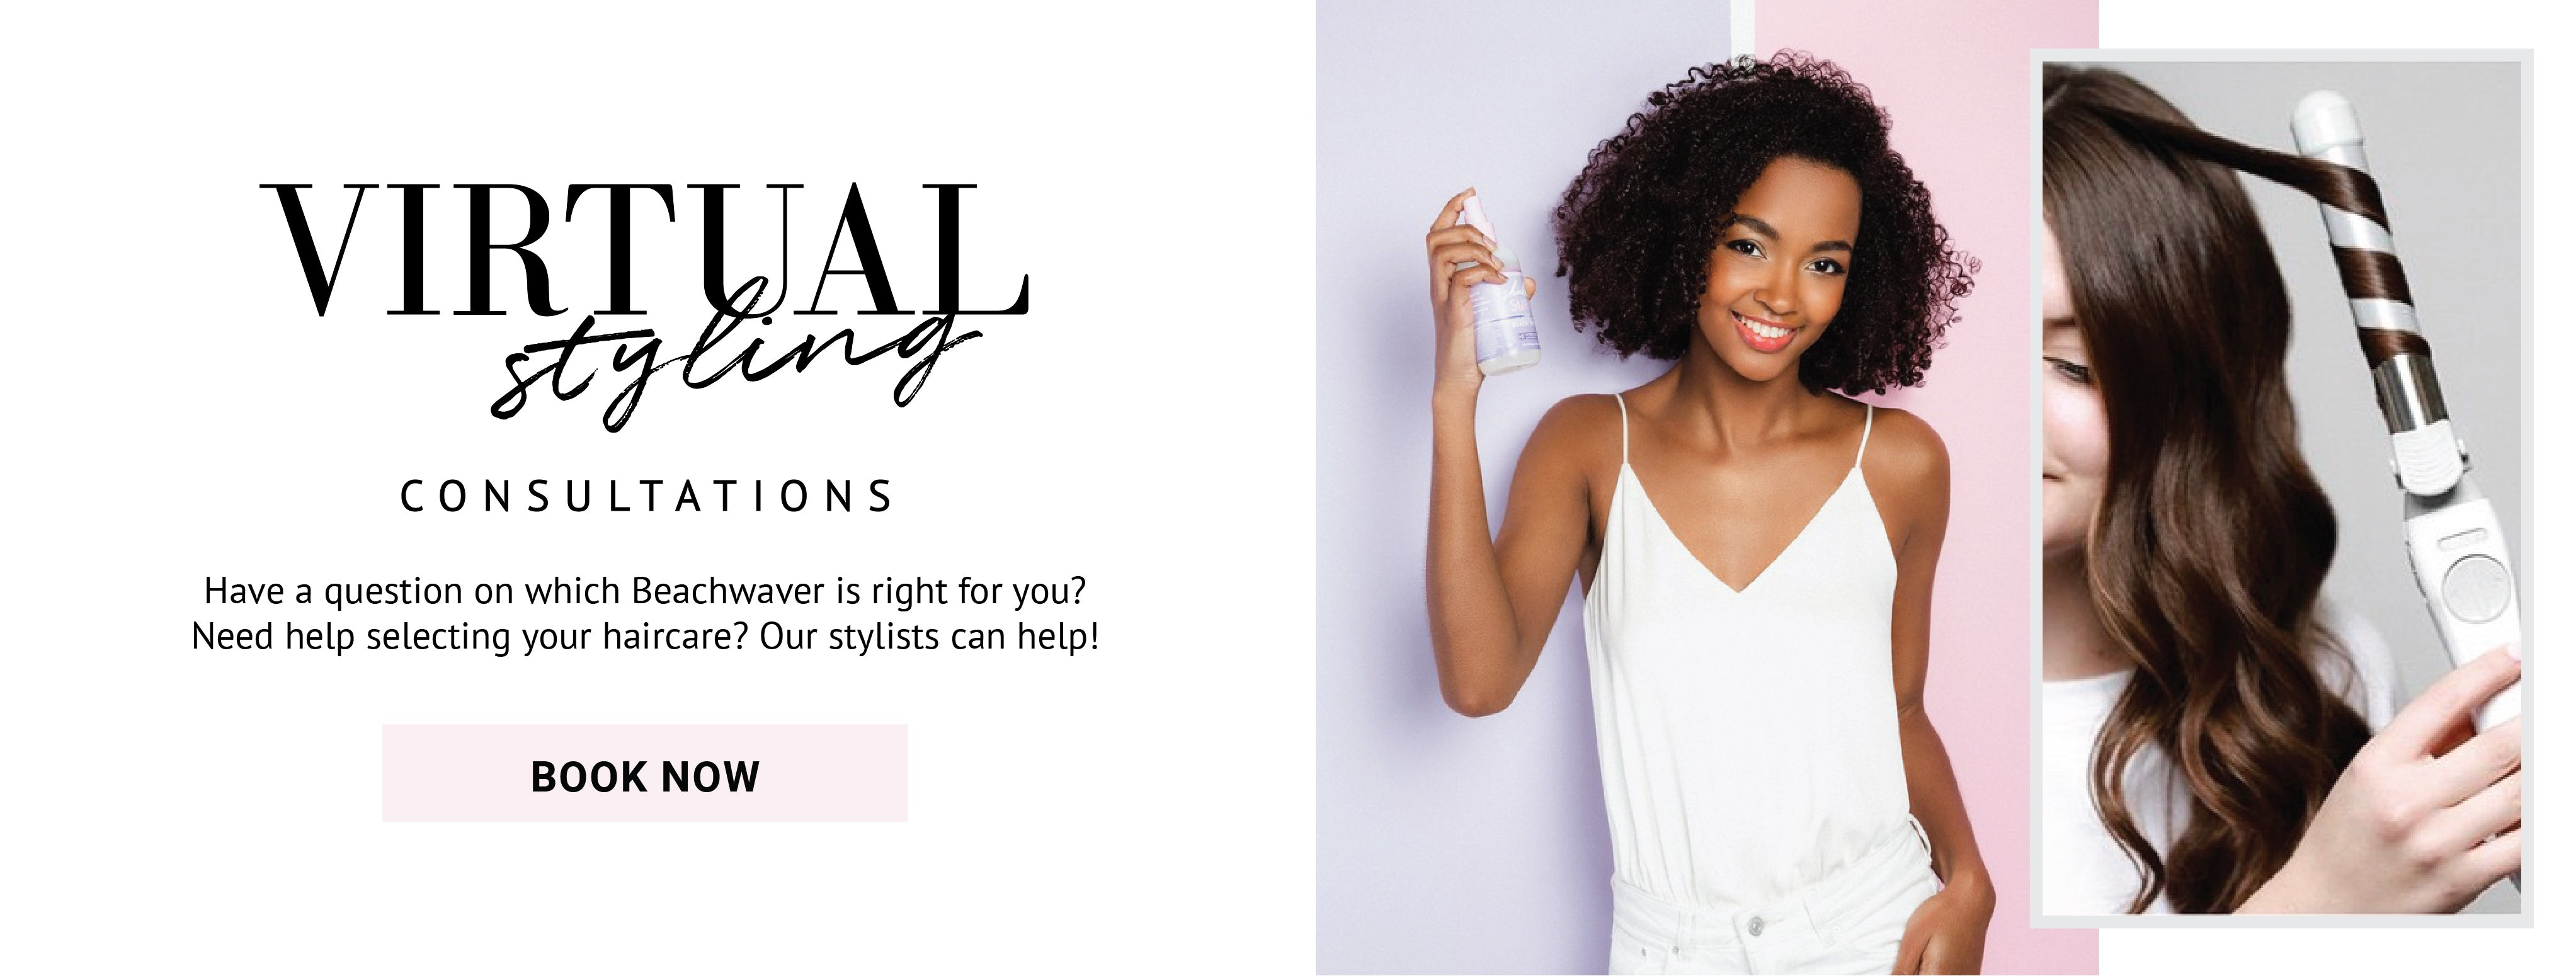 Get a virtual styling consultation!